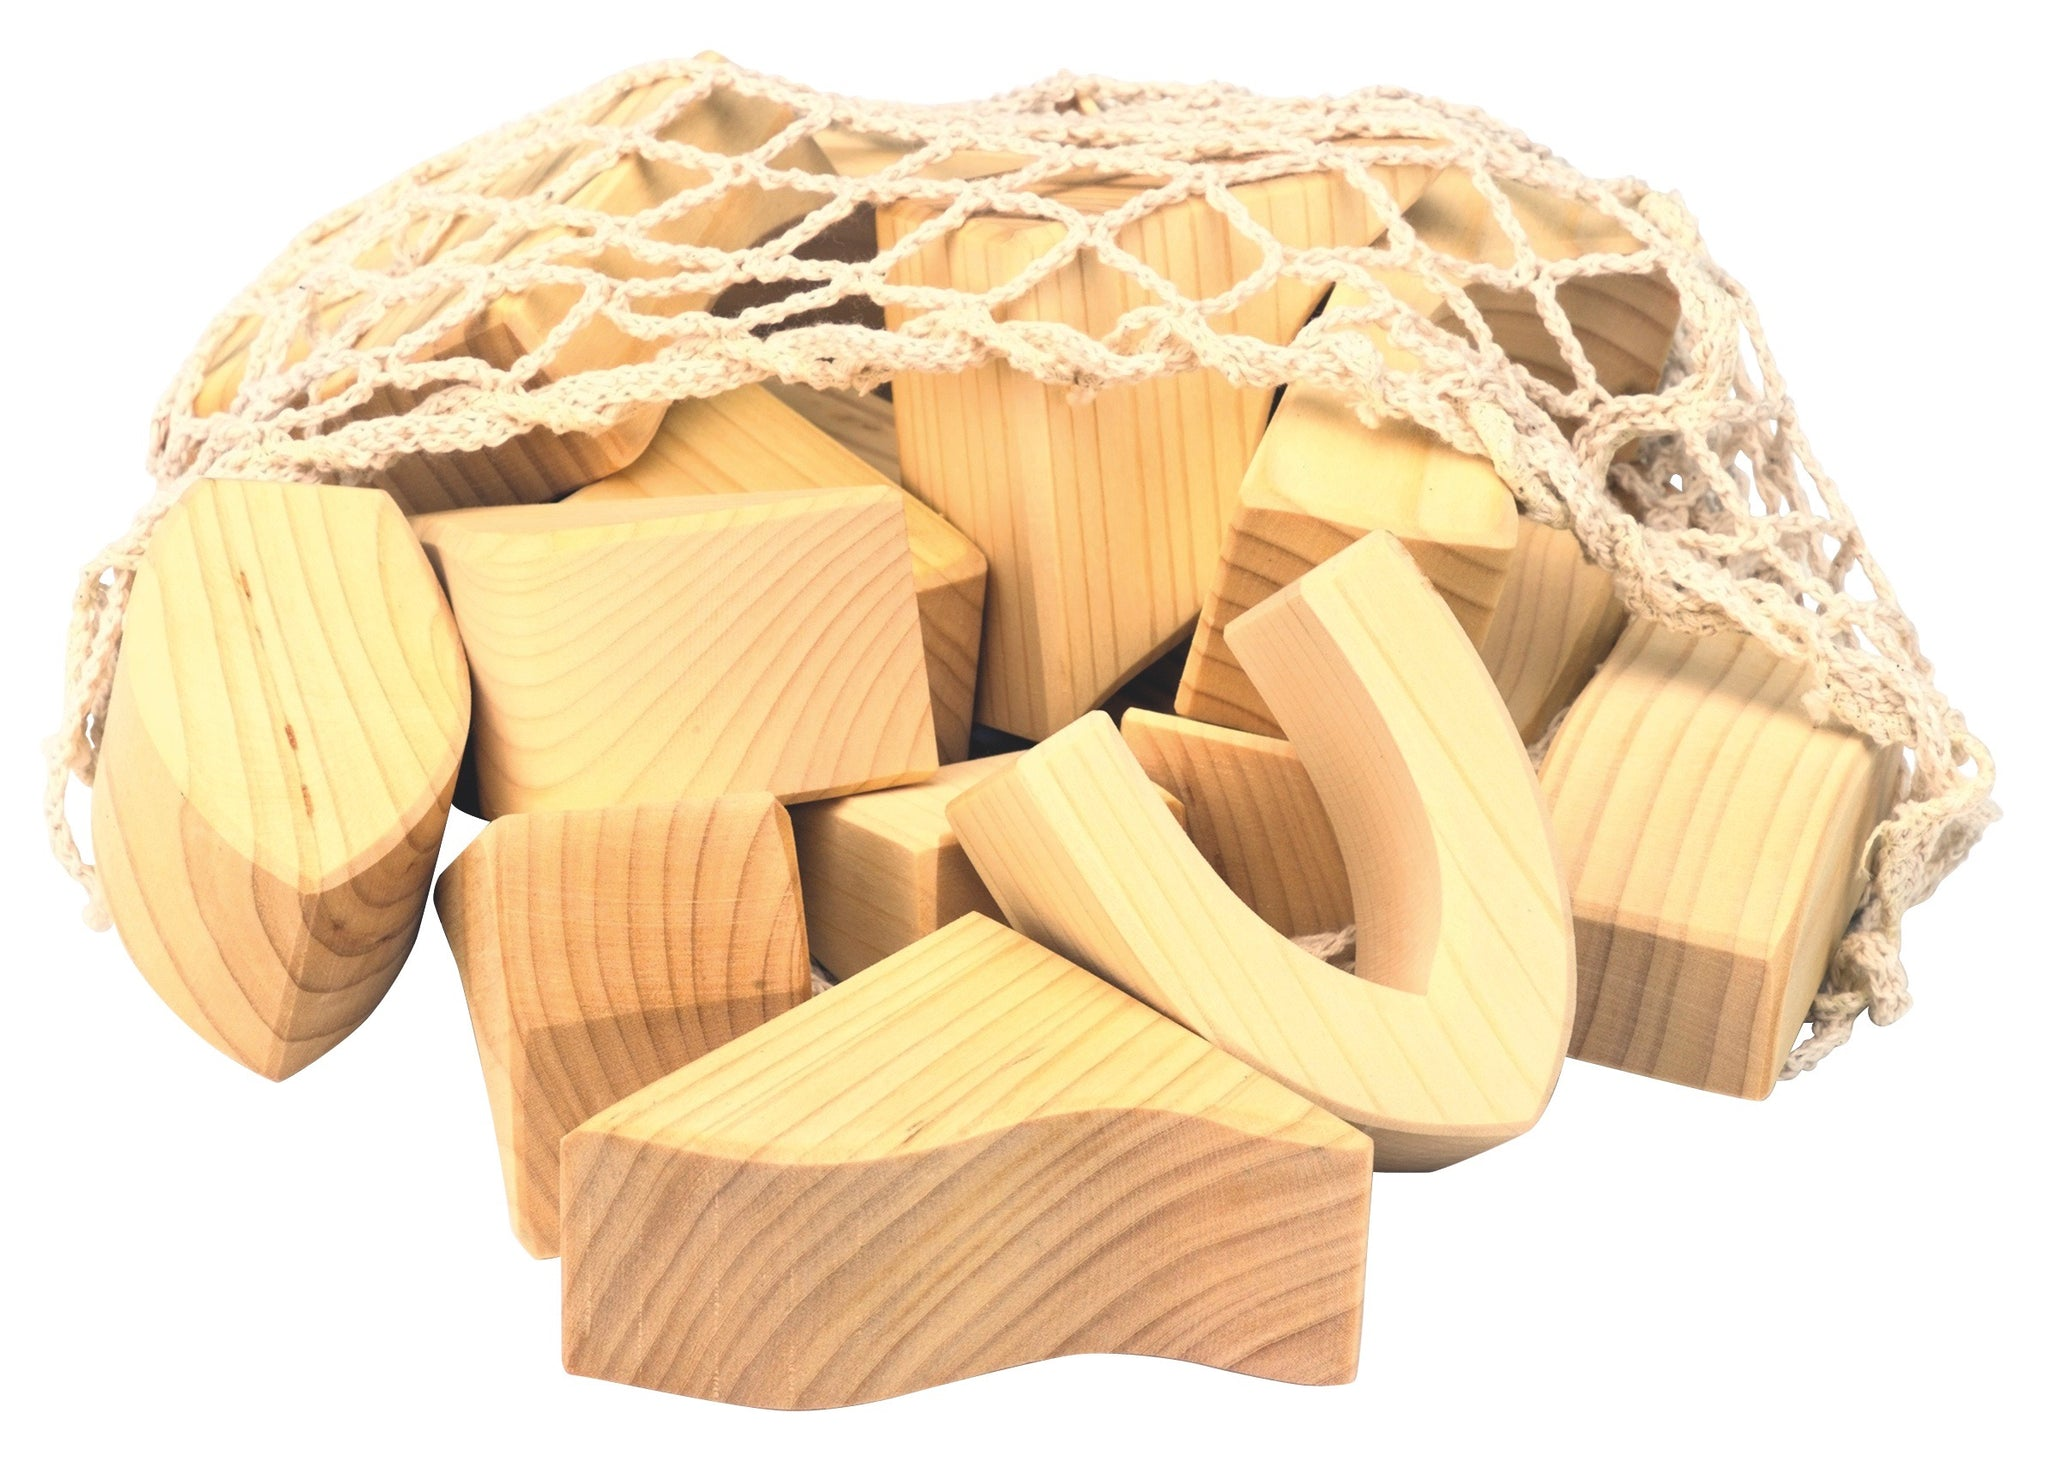 gluckskafer large wooden block set in a net bag